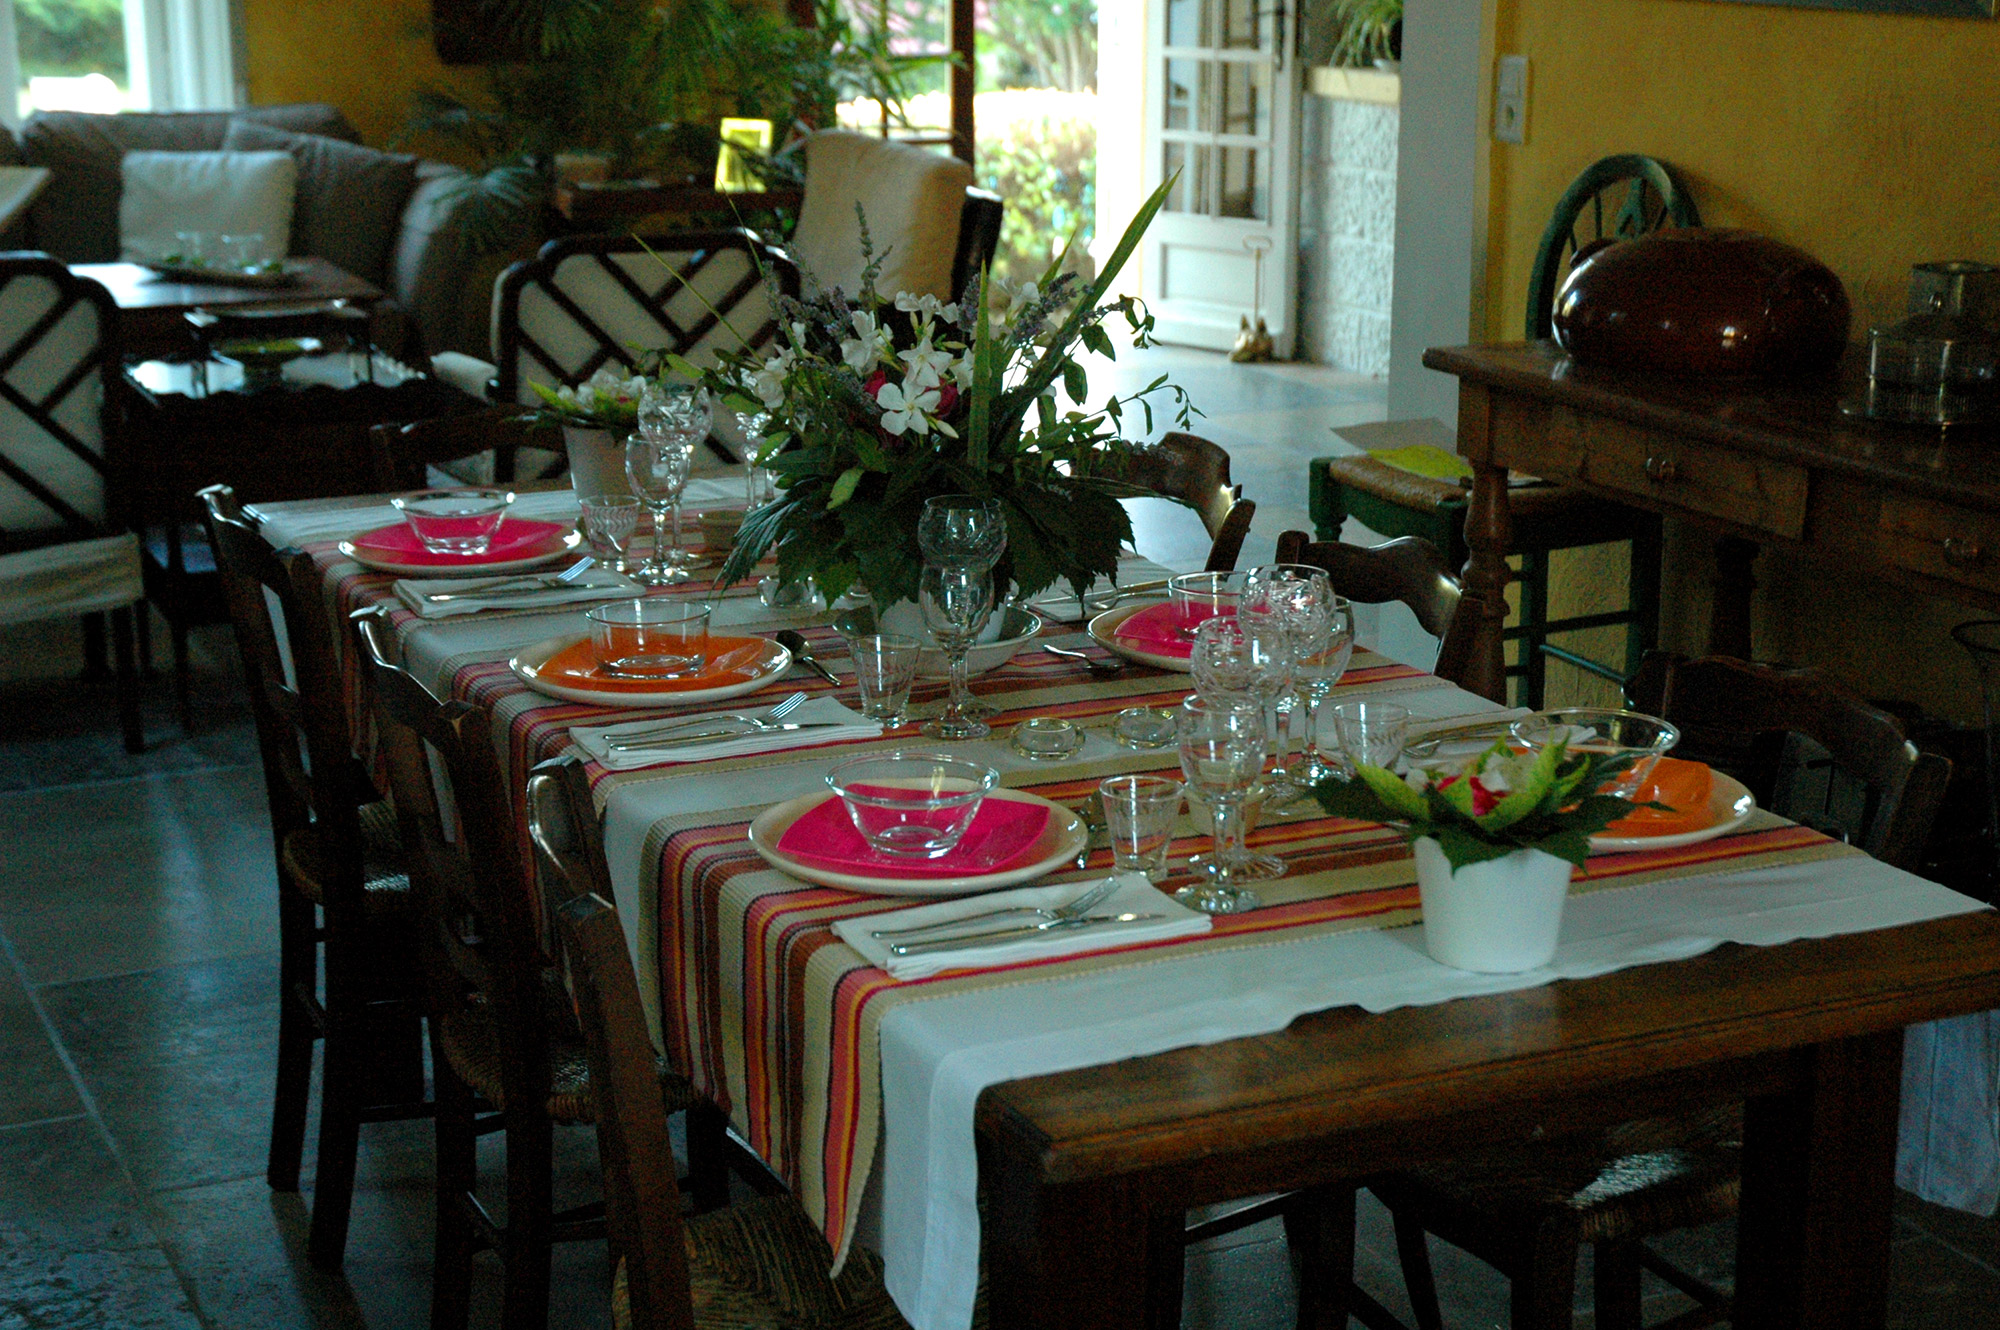 15-La-Table-Interieur.jpg